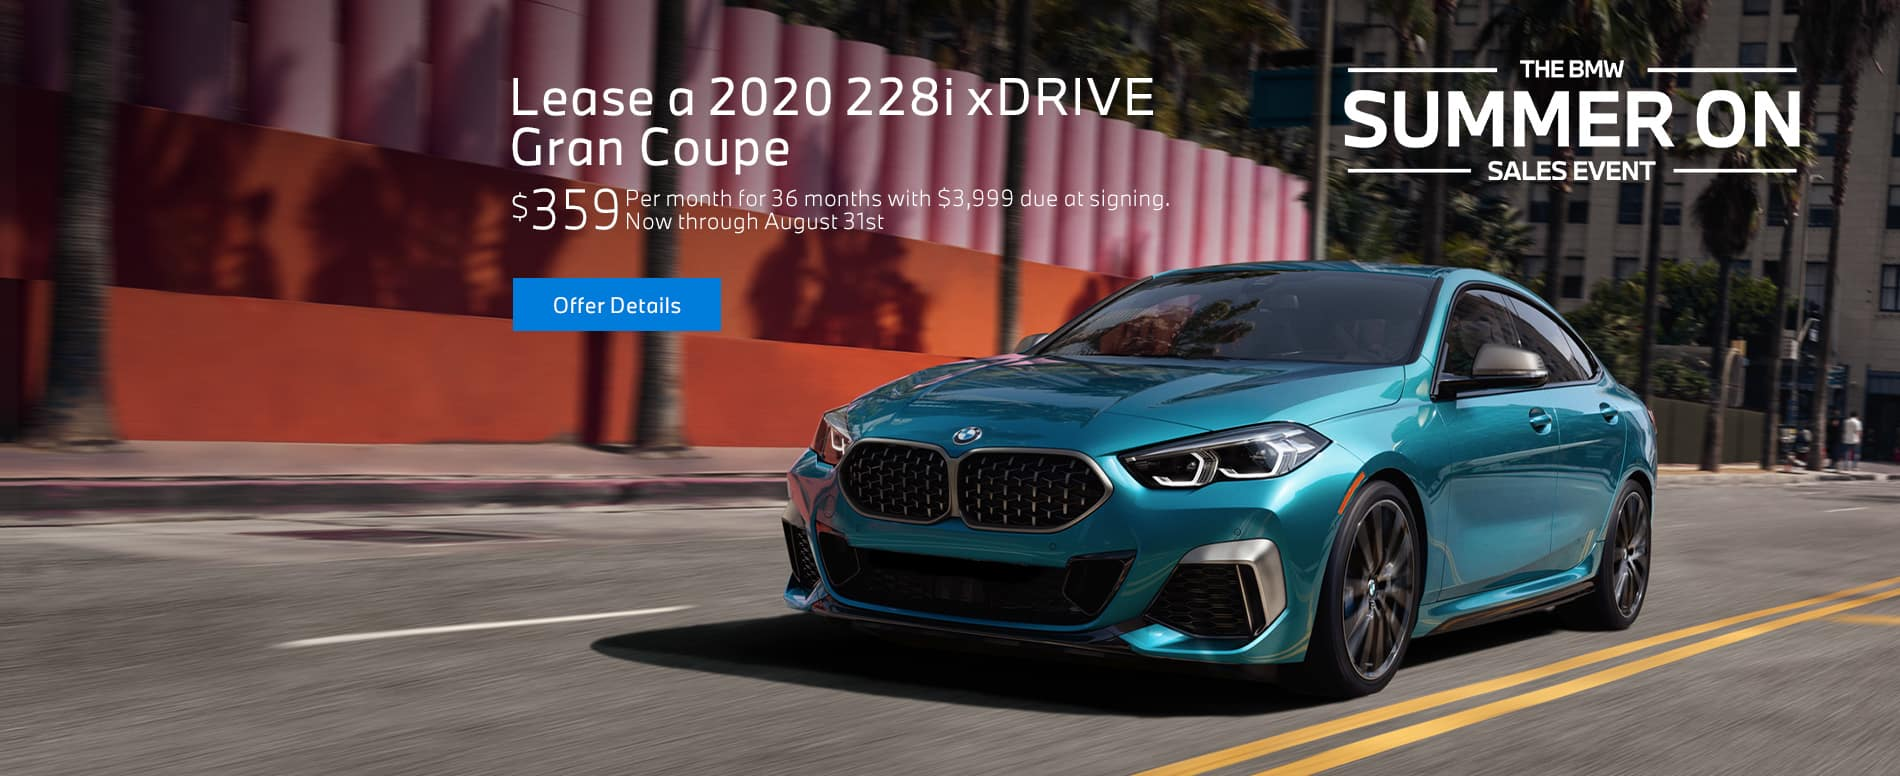 2020 228i xDrive Gran Coupe at BMW of Fort Walton Beach